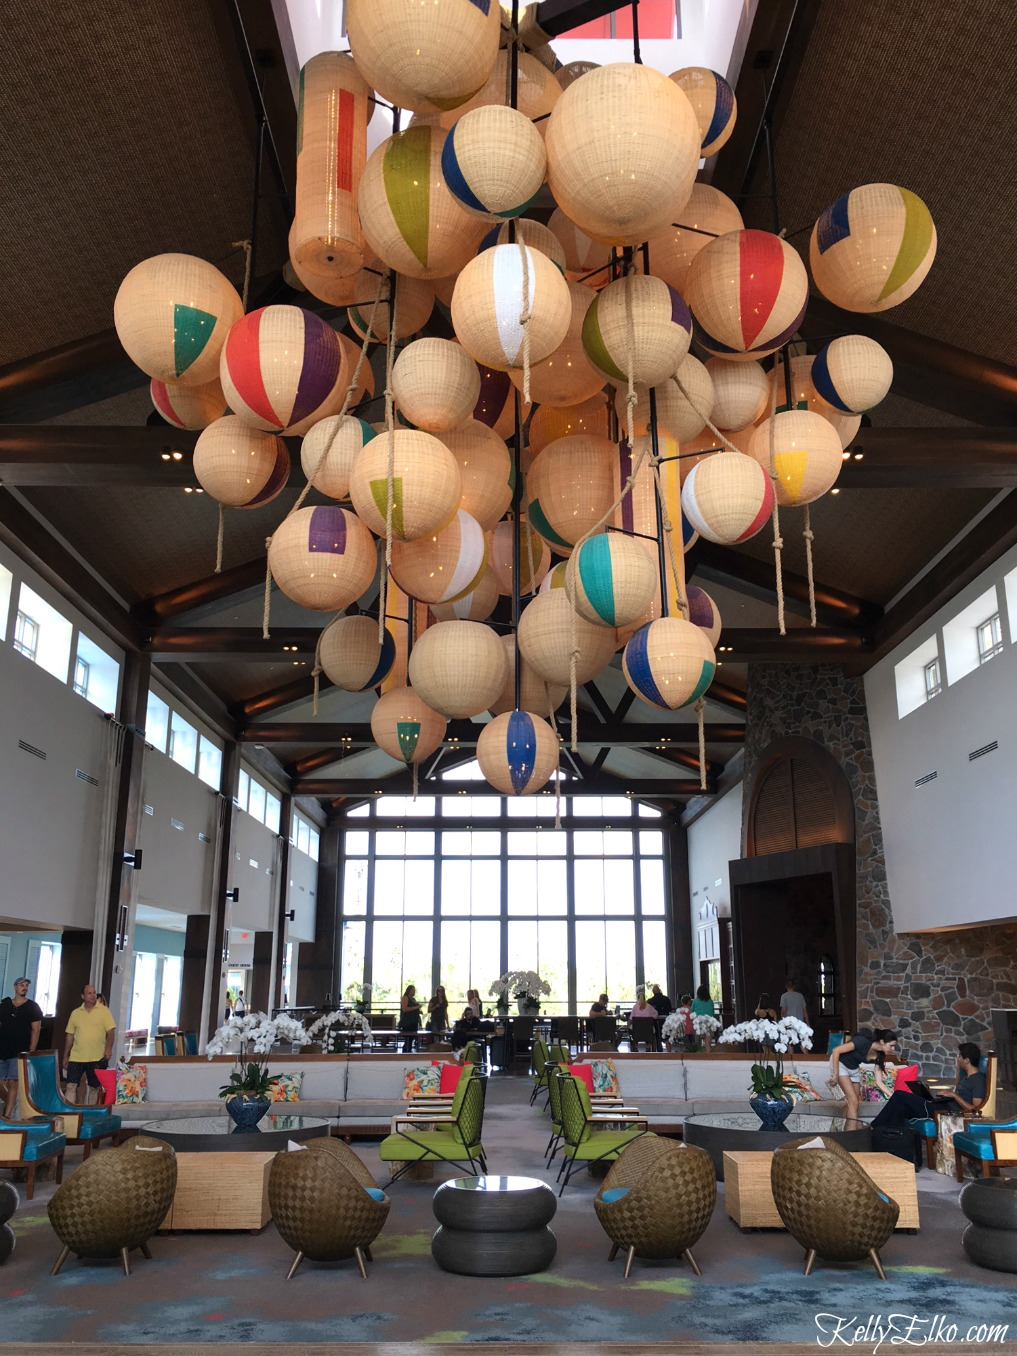 Sapphire Falls Resort - love the amazing beach ball chandelier in the lobby kellyelko.com